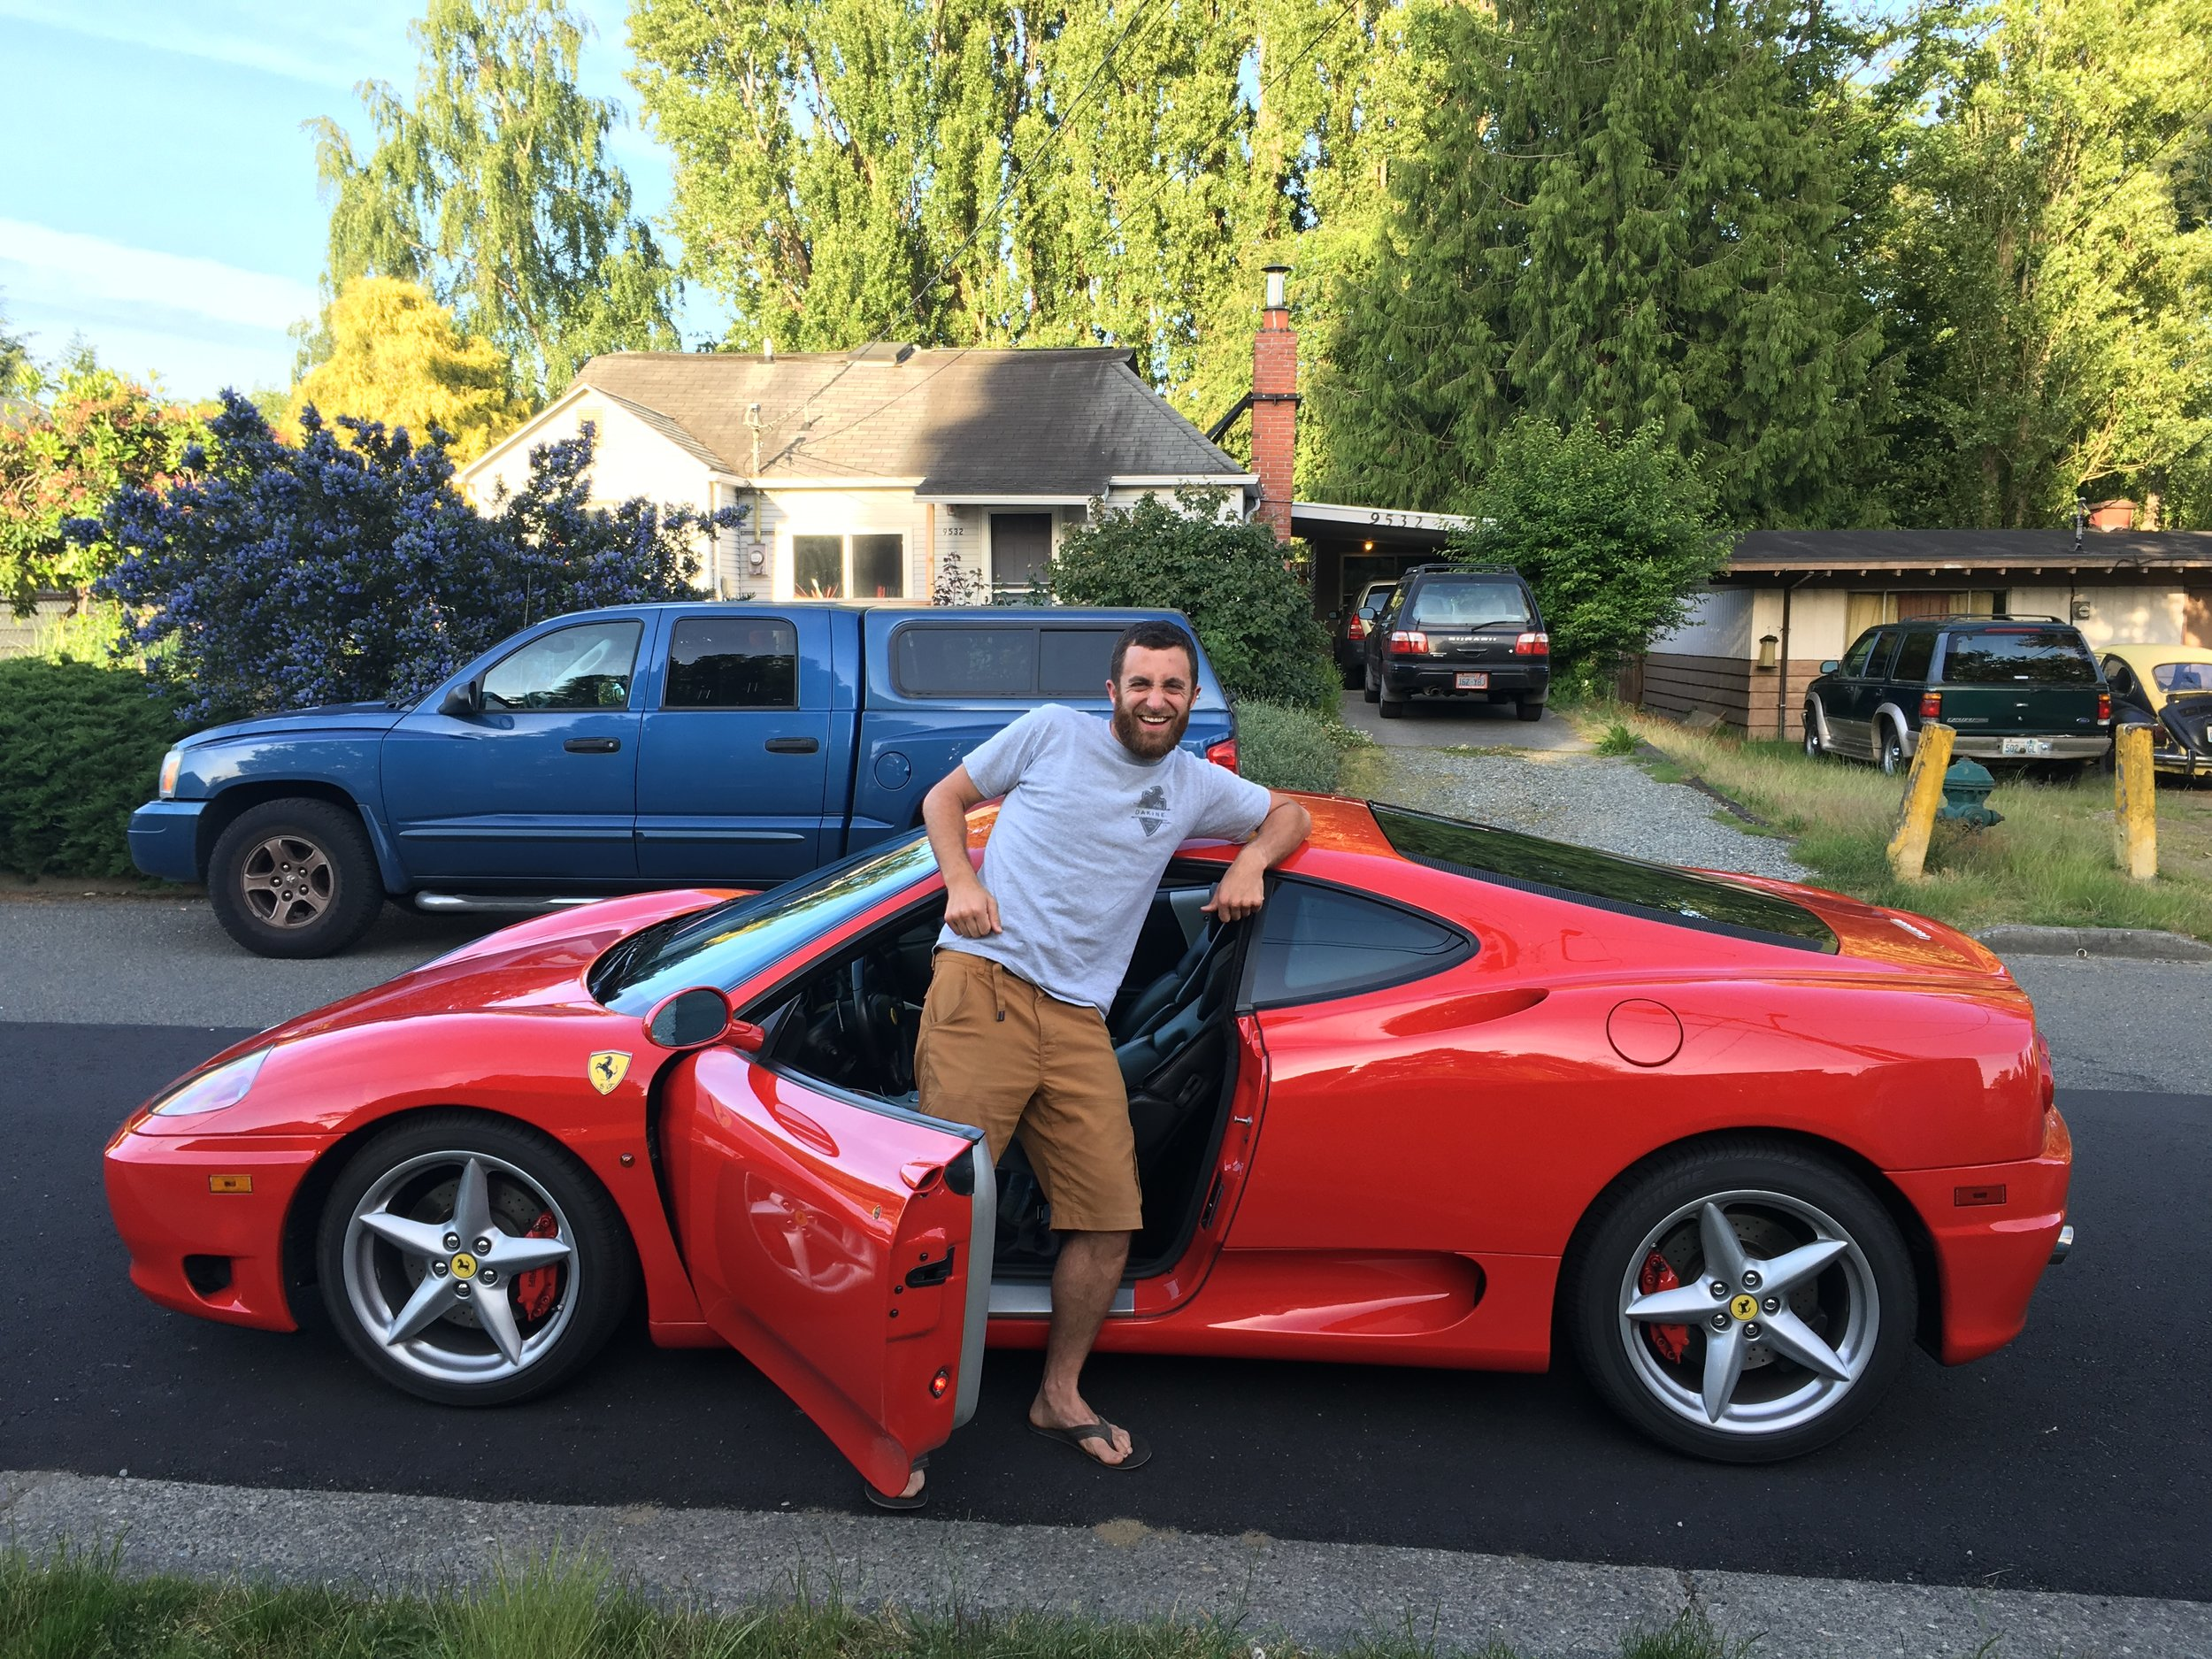 No, not my ride. I'm posing next to a friend's ridiculous, but sext Ferrari.